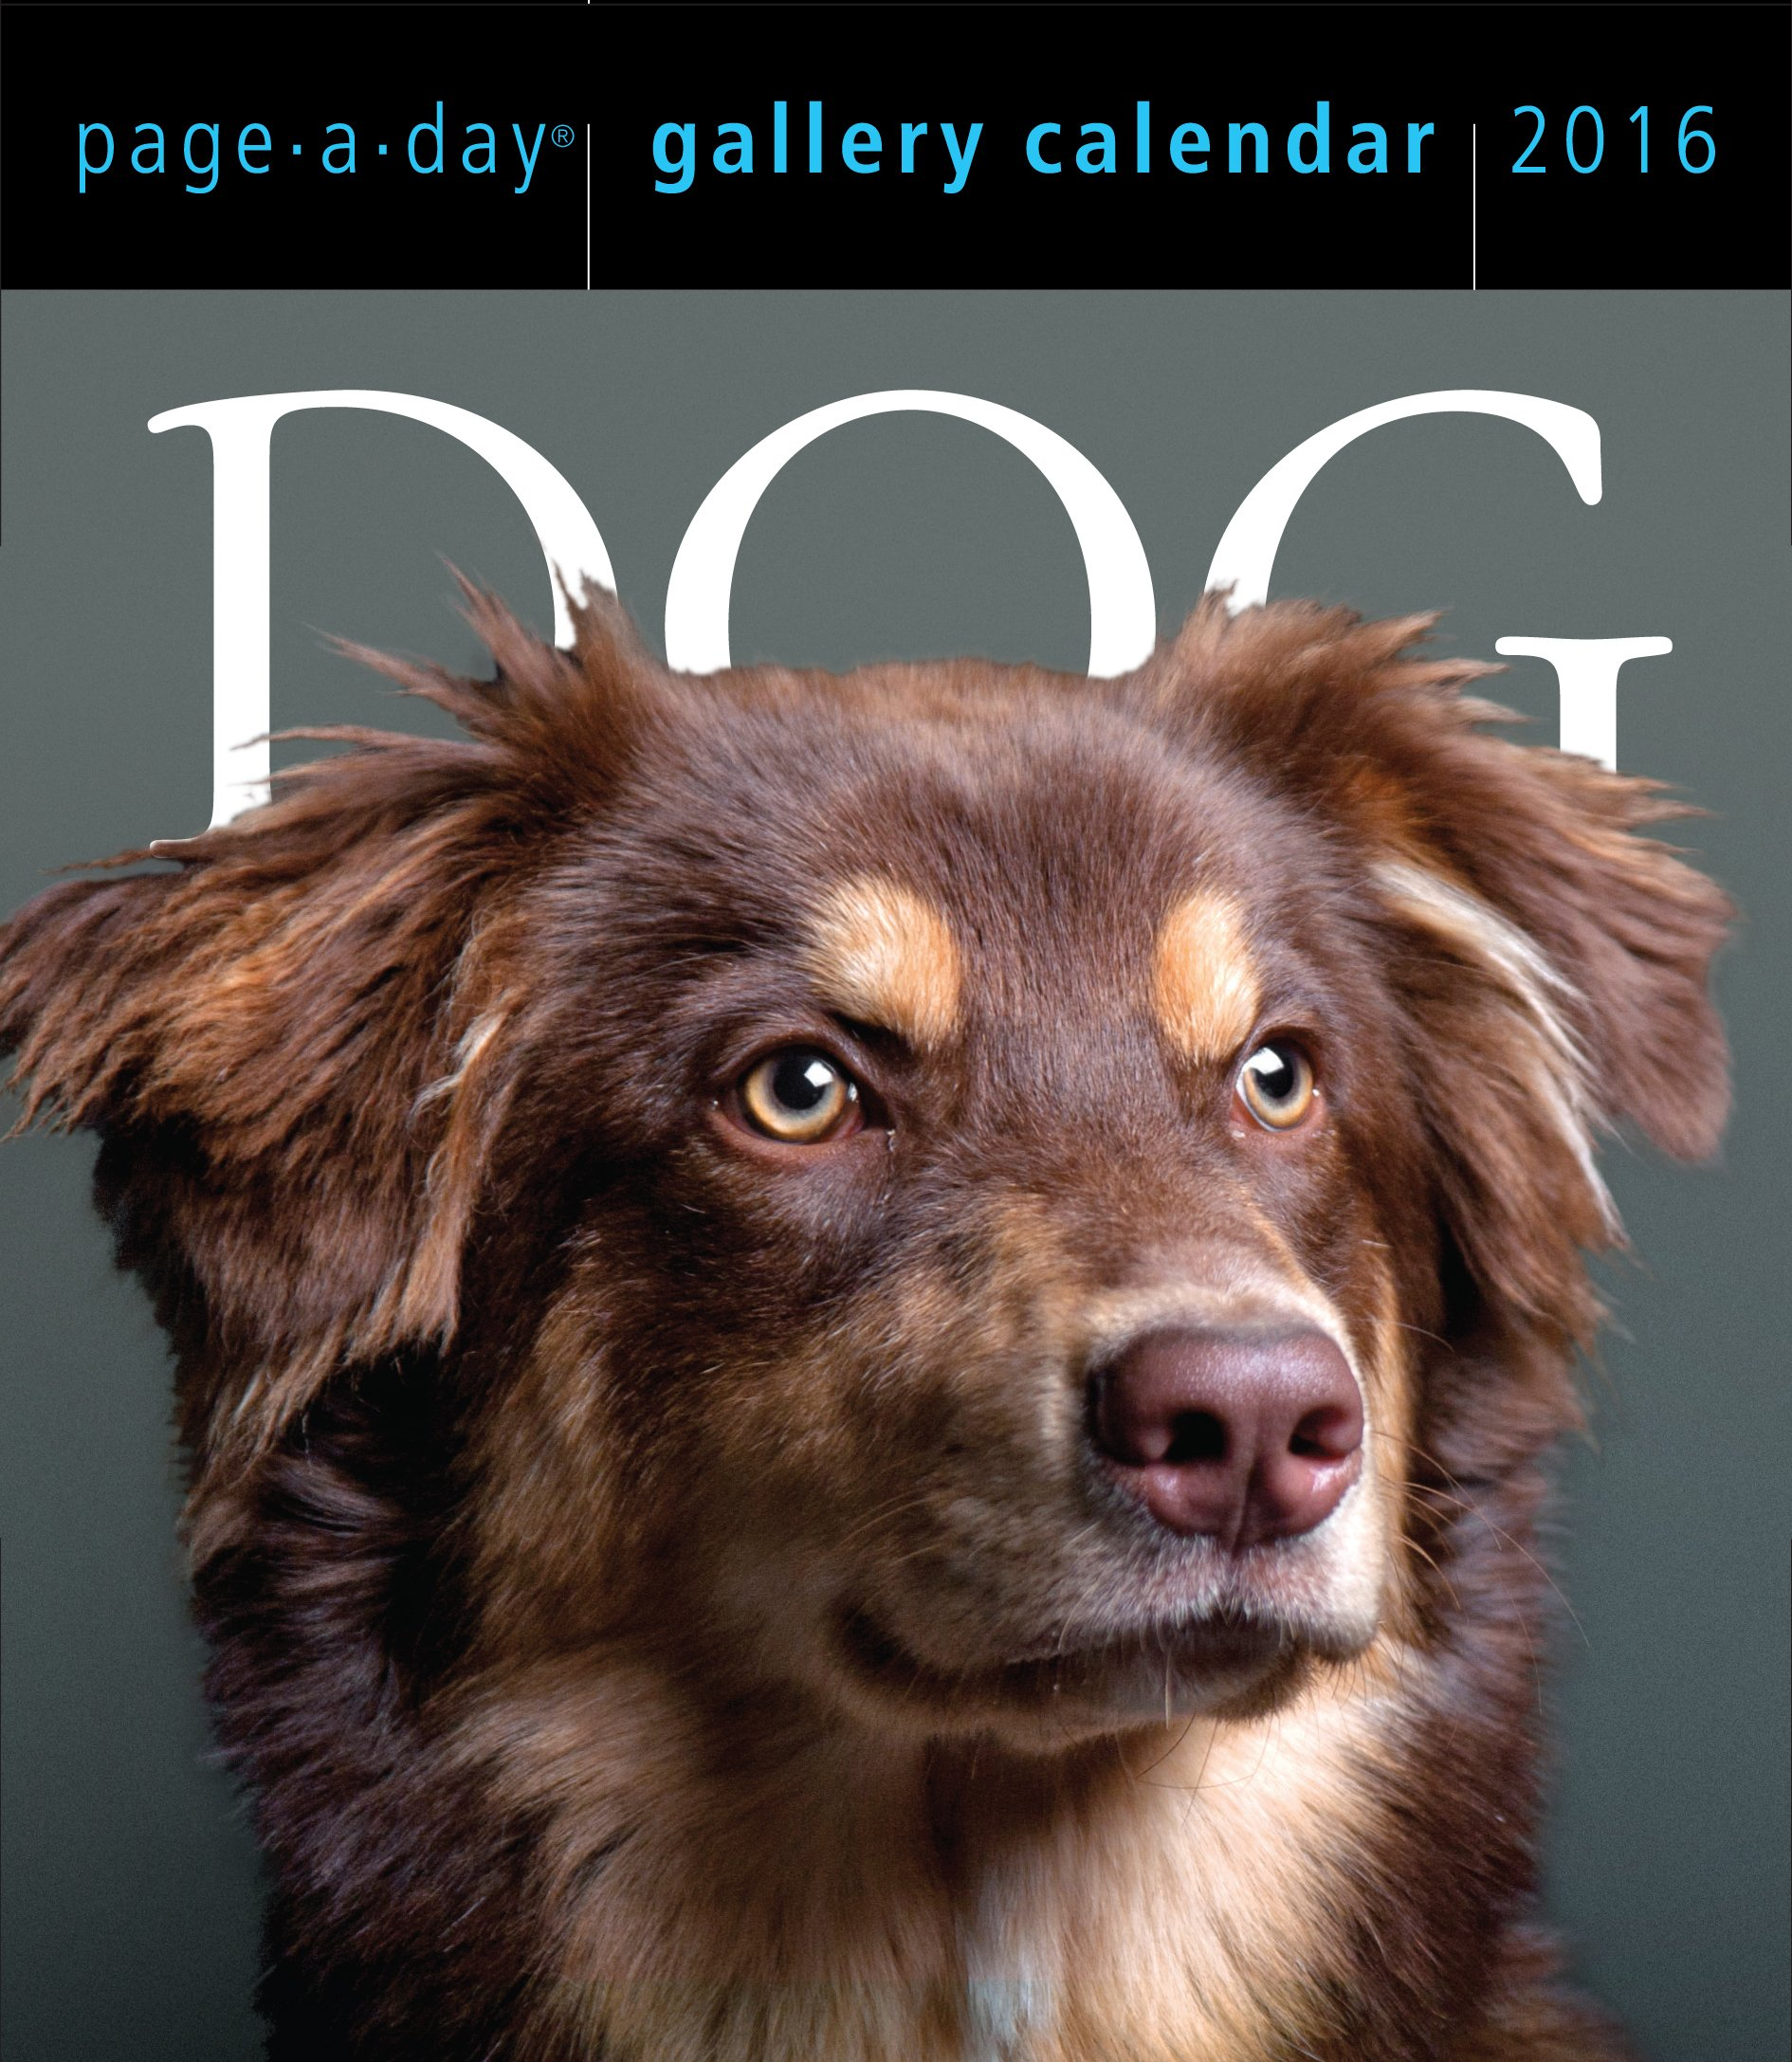 dog page a day gallery calendar 2016 workman publishing